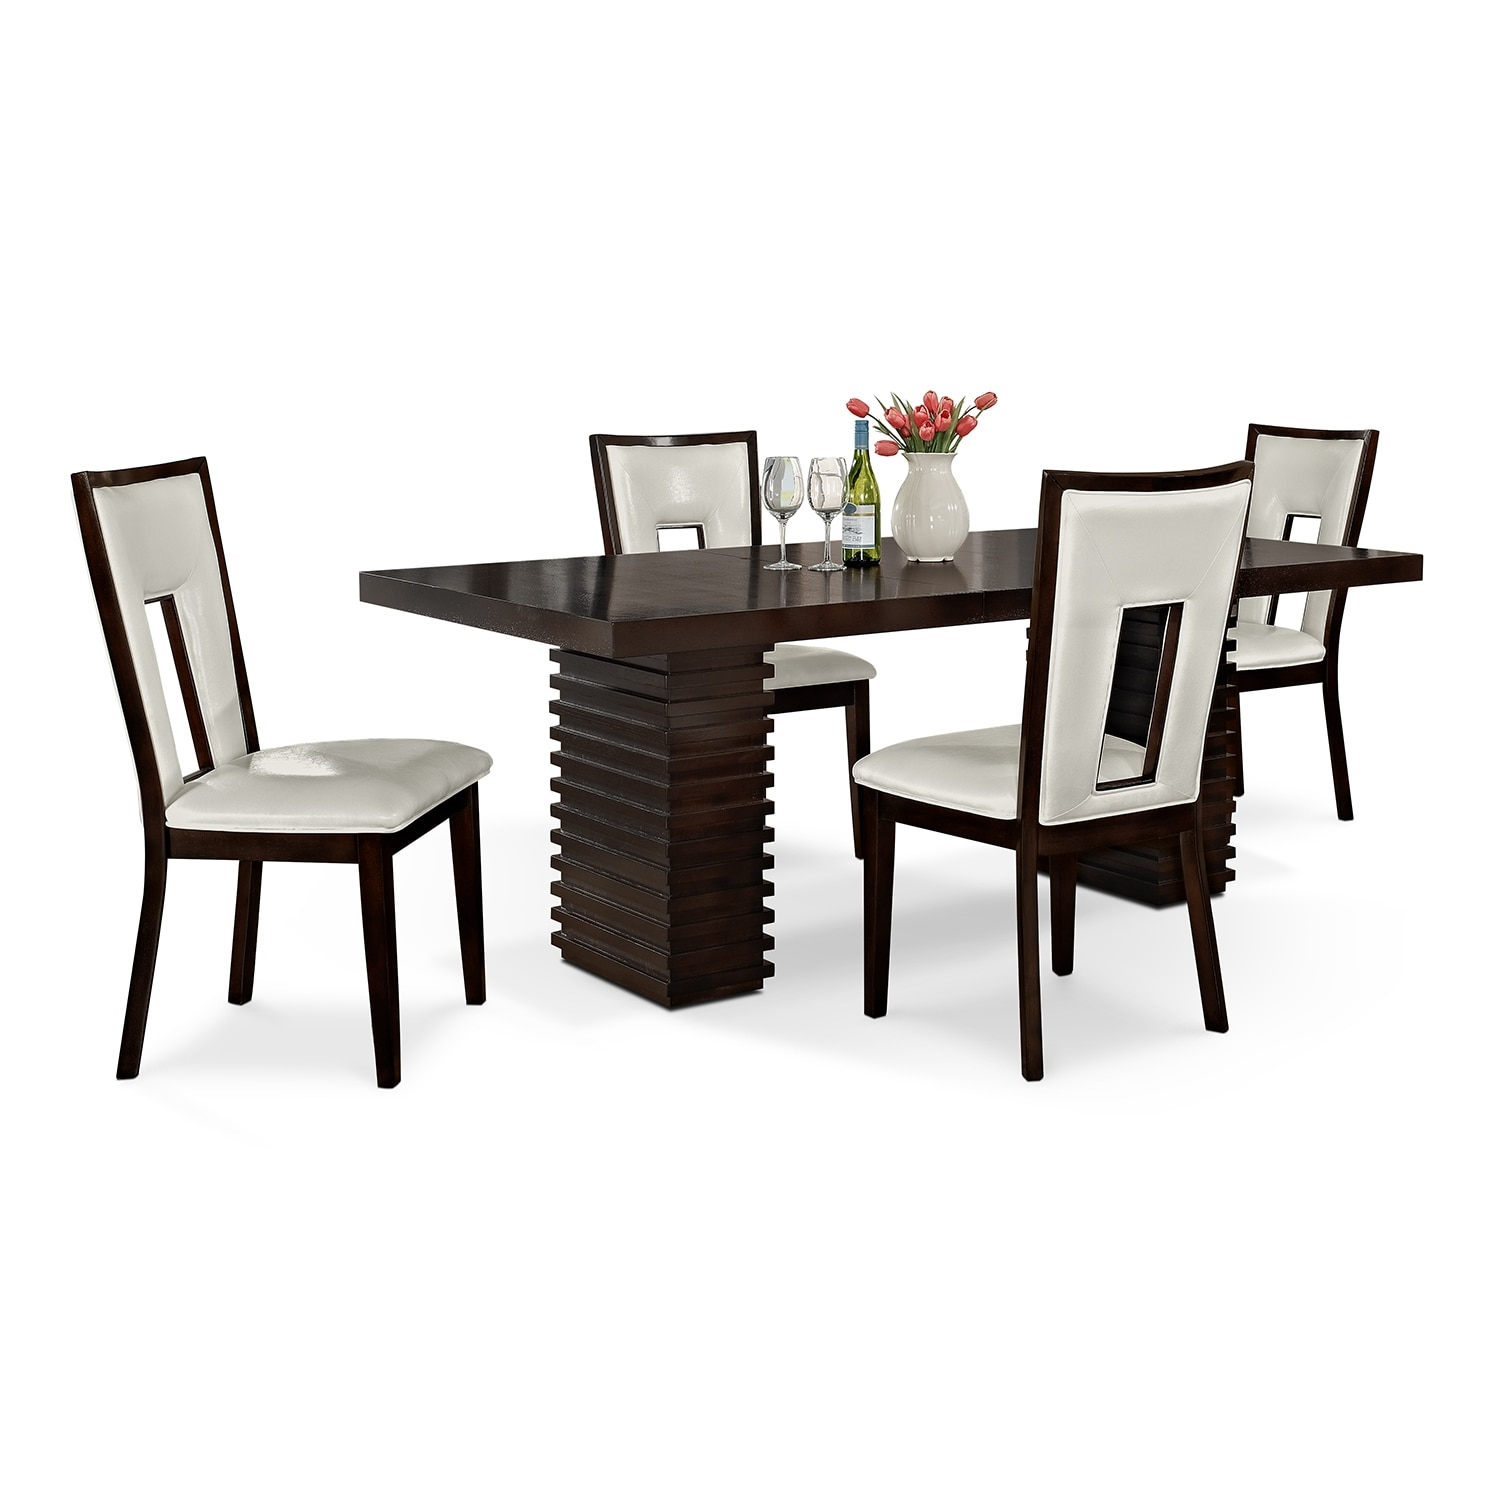 Dining Room Furniture - Paragon Madera II 5 Pc. Dinette